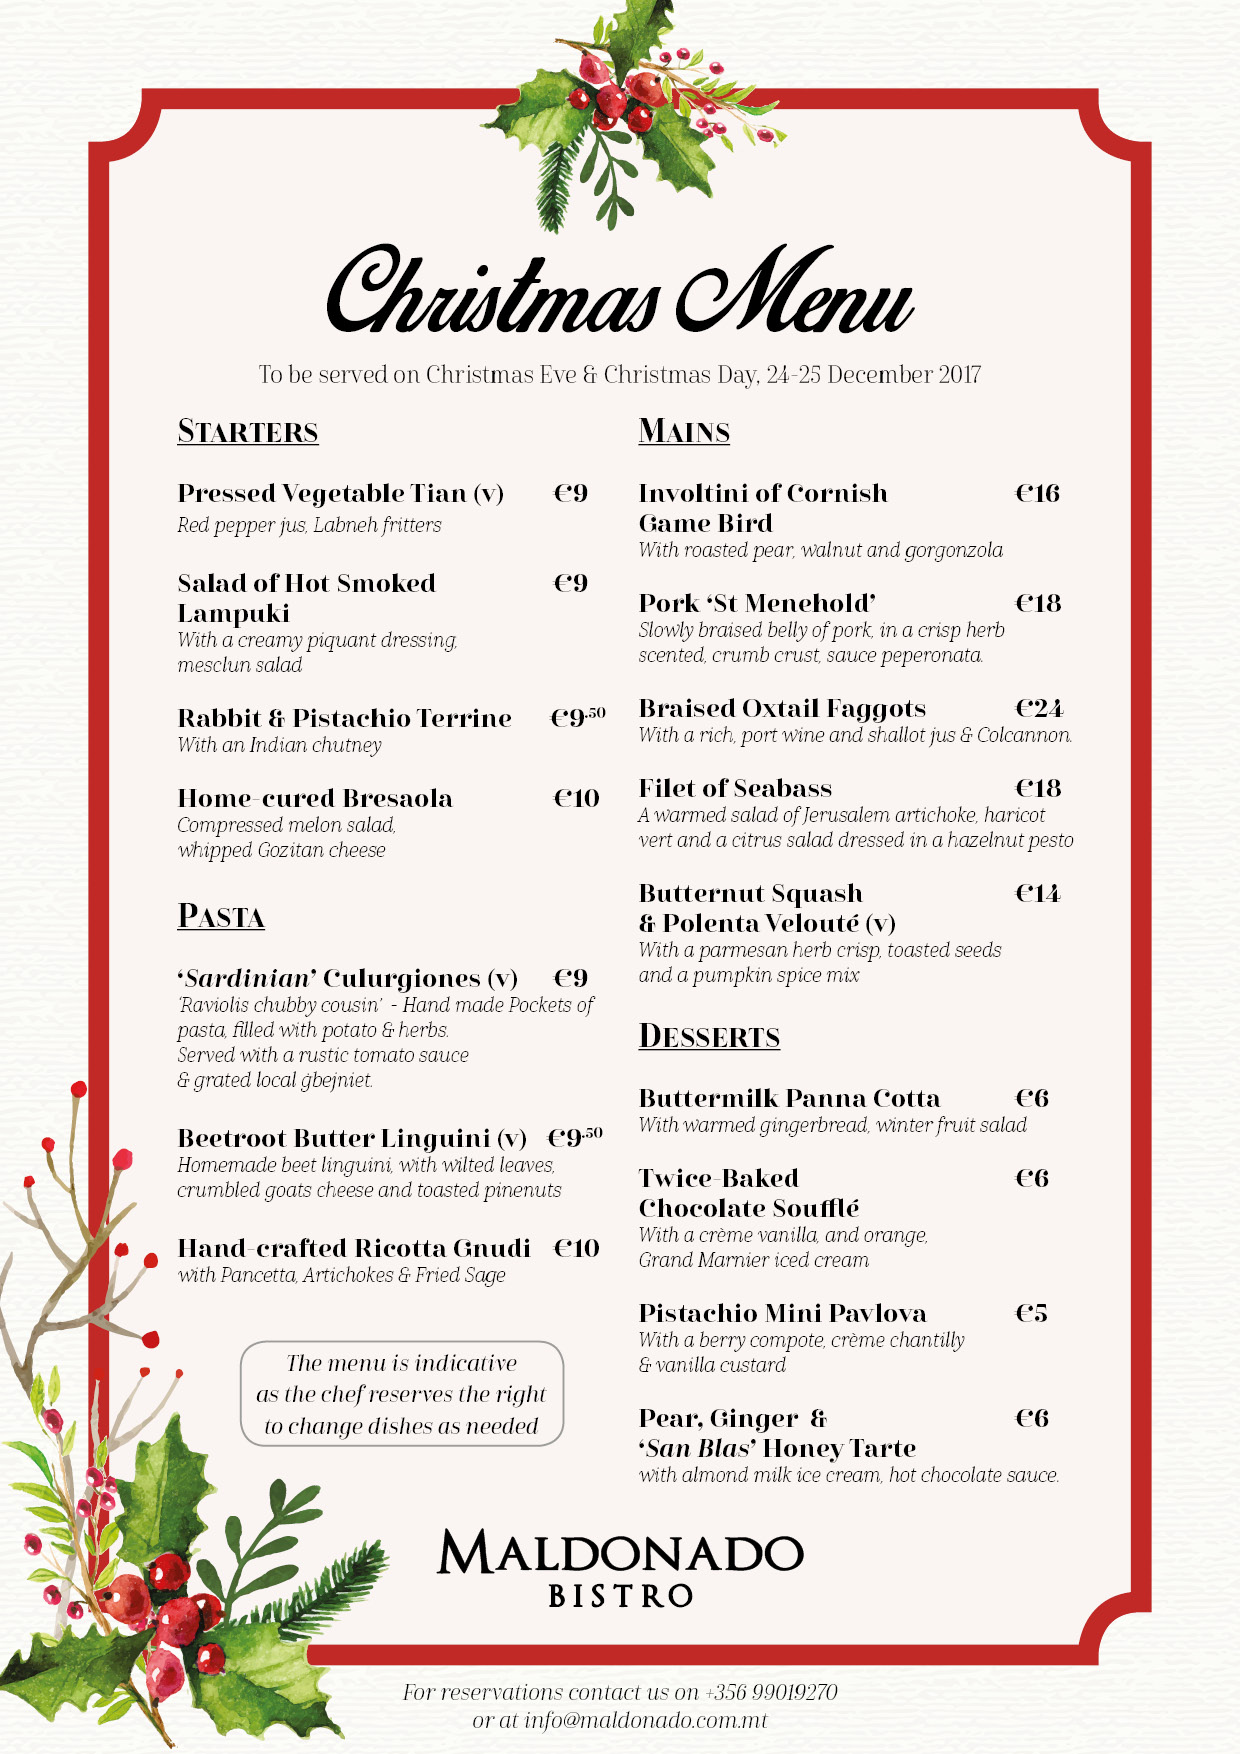 Maldonado Christmas Menu 2017